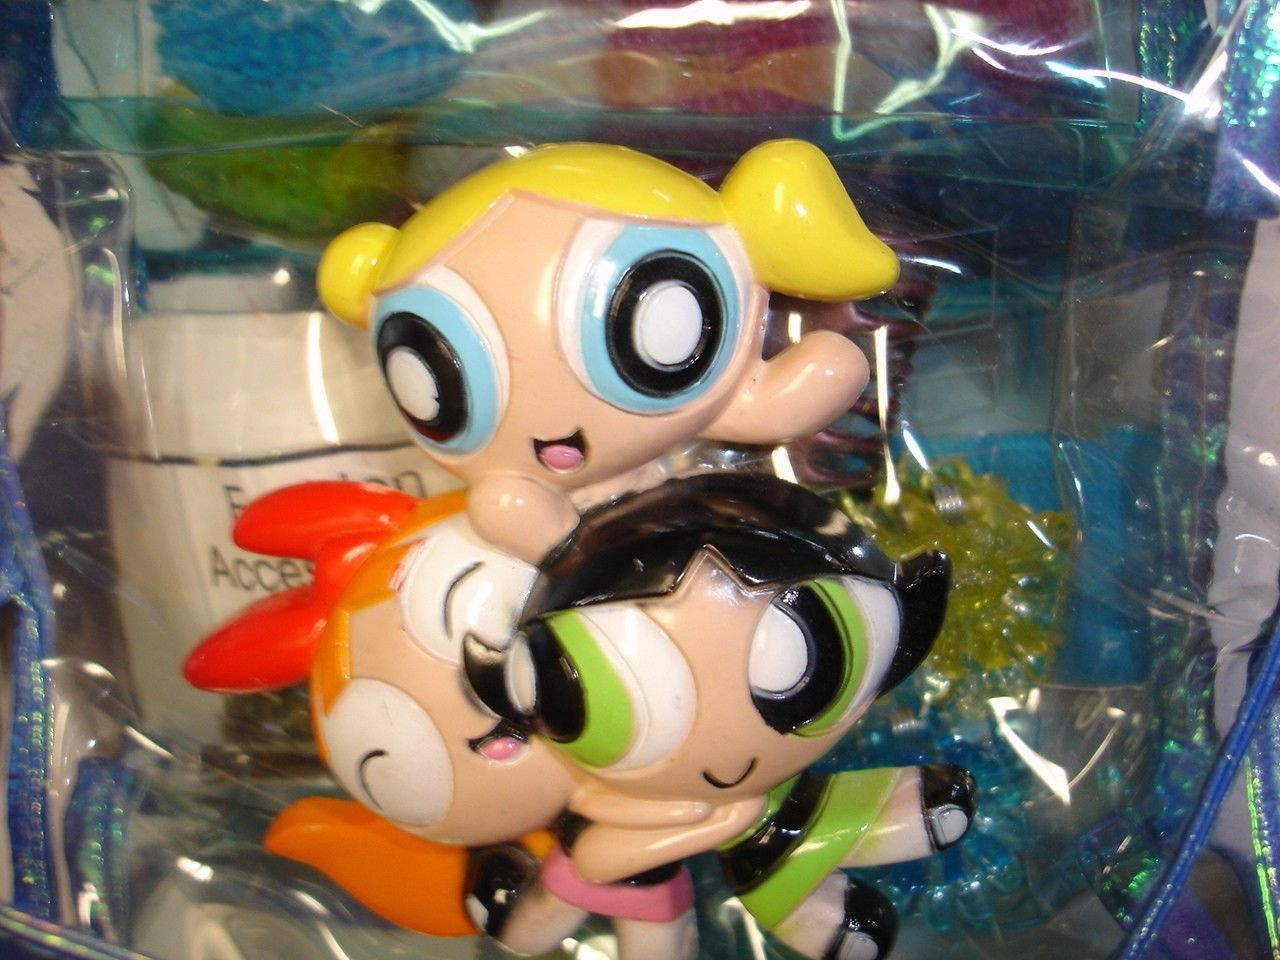 New Cartoon Network Powerpuff Girls mirror & hair accessories set image 5